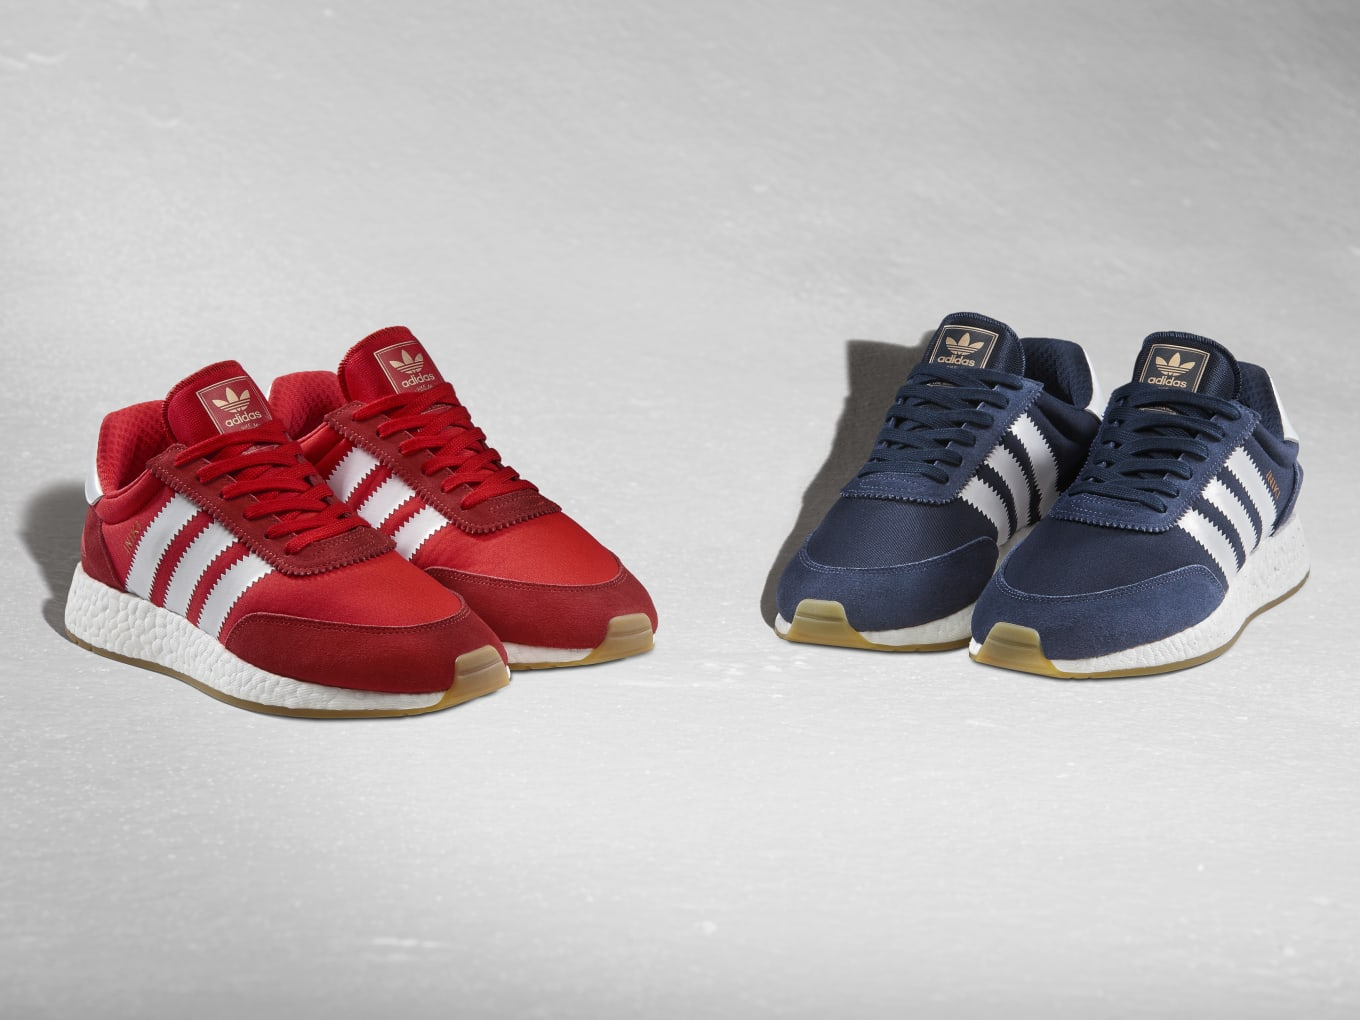 brand new f44b9 c327f Adidas Introduces a New Boost Sneaker. The Iniki Runner.